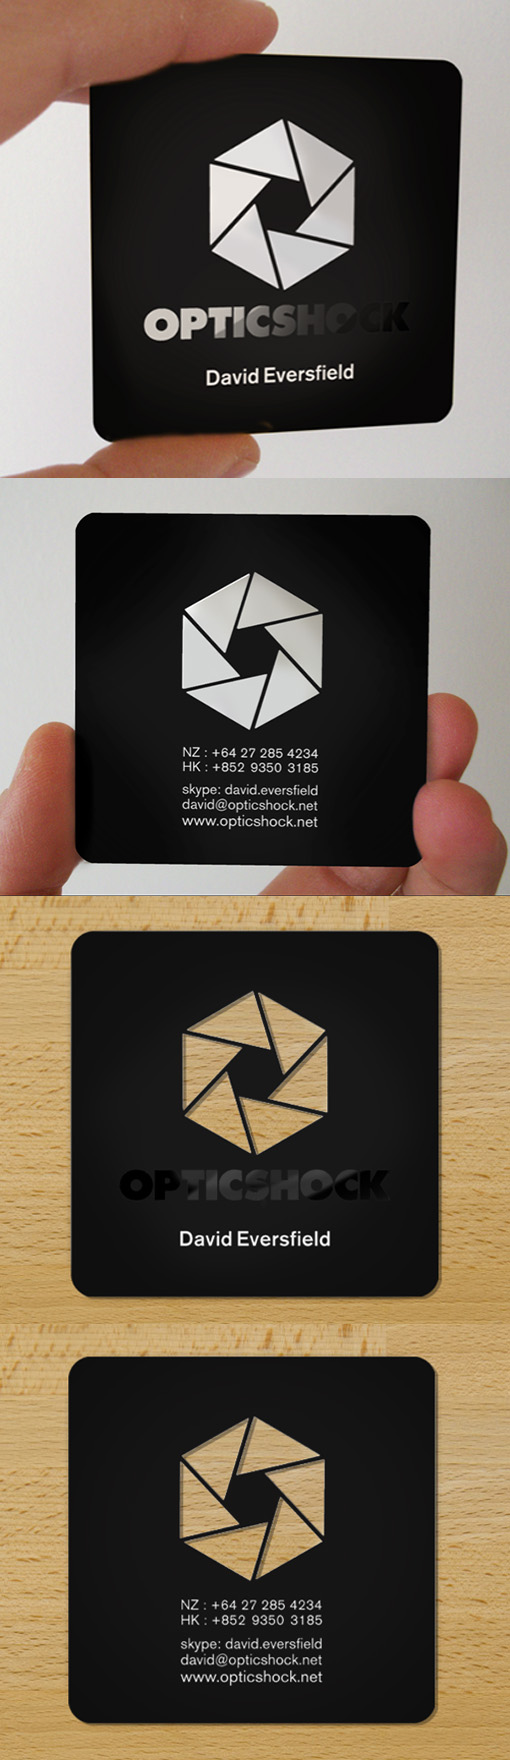 Slick Laser Cut Black Plastic Business Card Design | Graphic Design ...